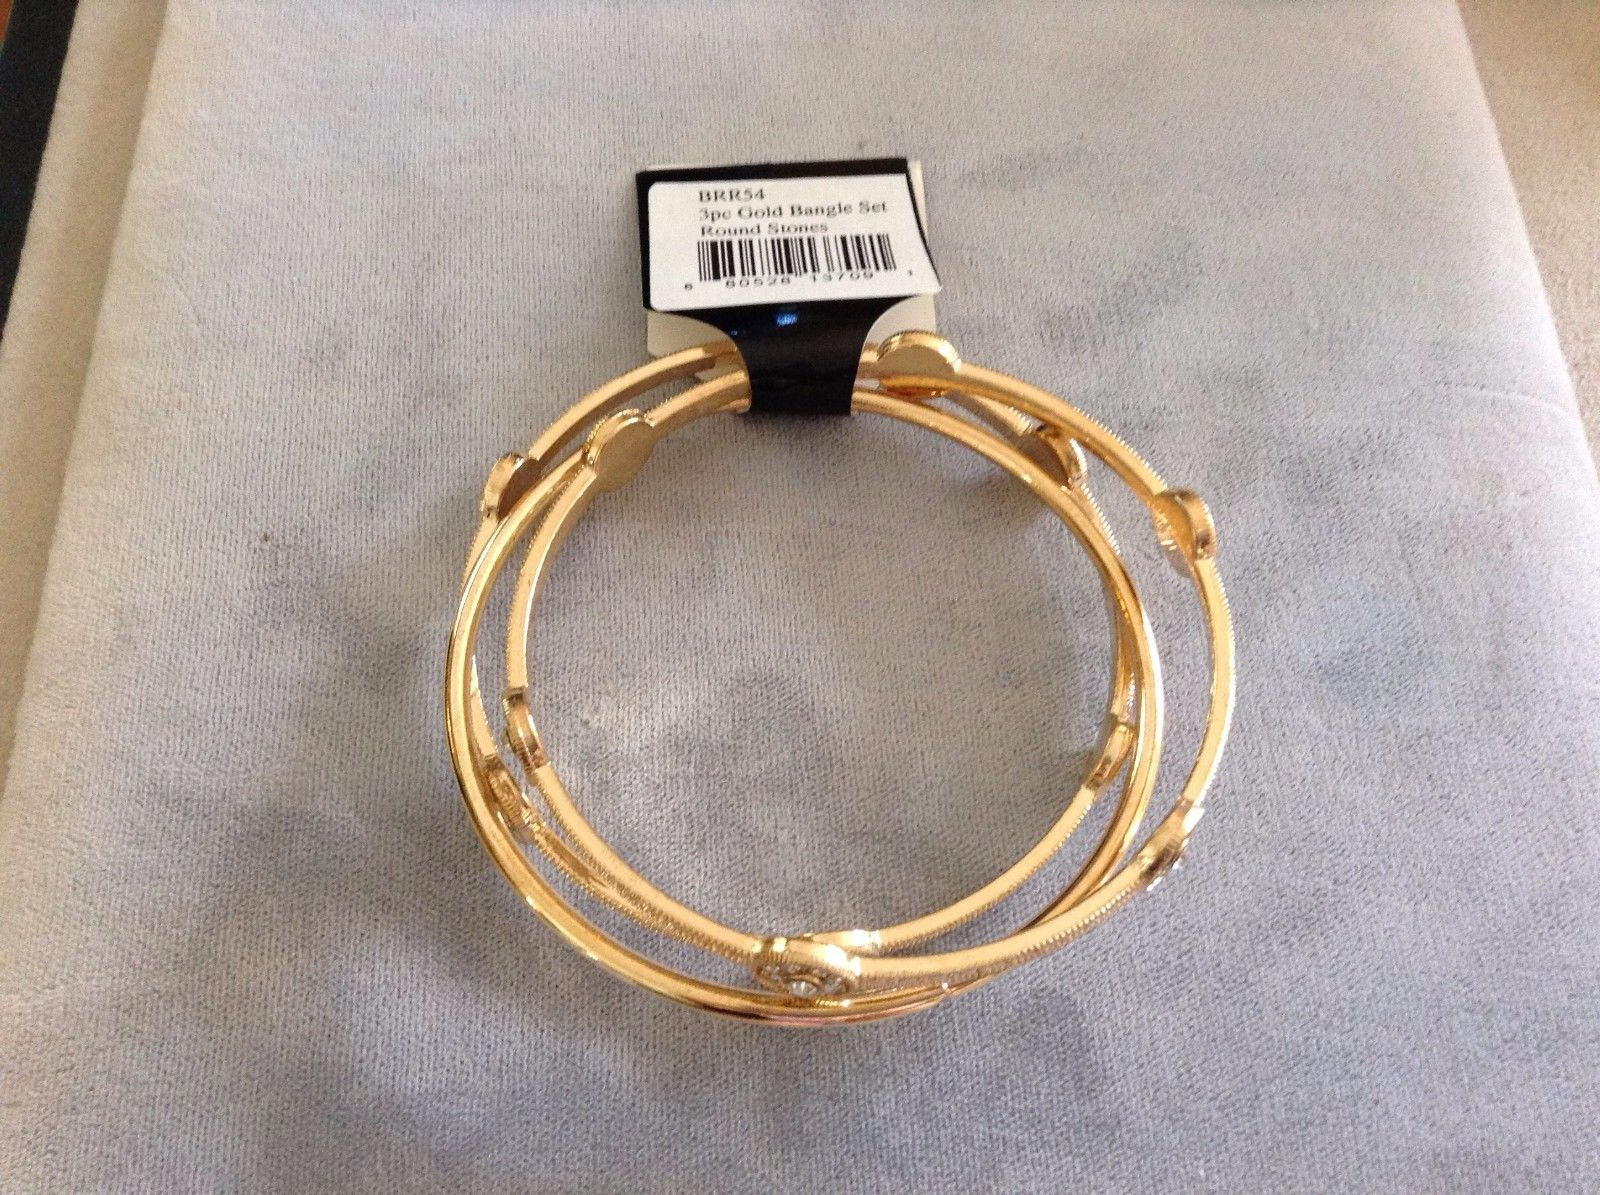 New Three Piece Gold Toned Bangle Bracelet Set With Round Stones